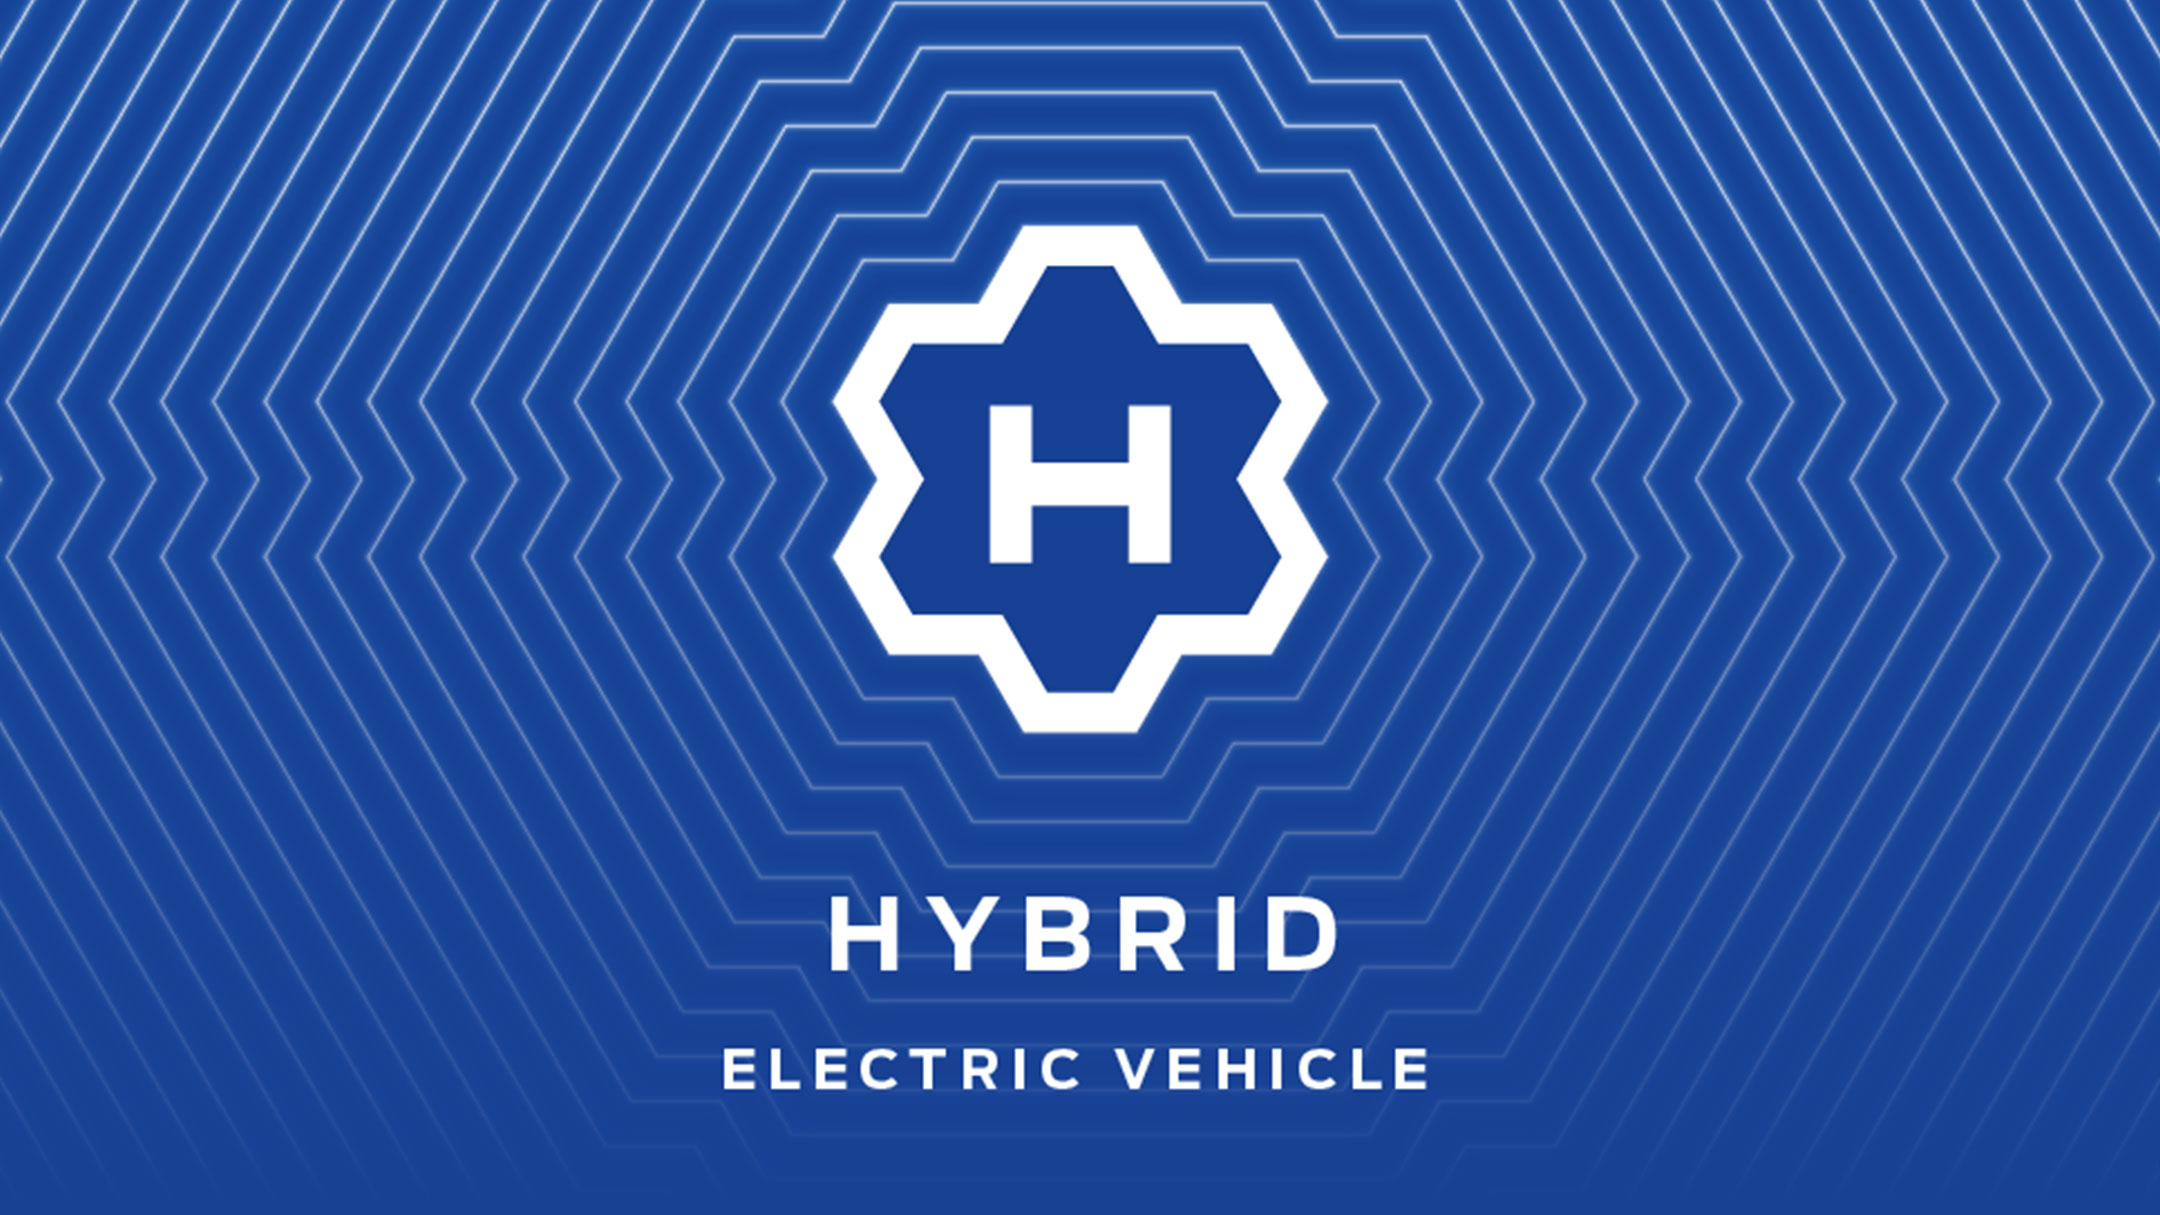 //transit.stoneacremotorgroup.co.uk/Hybrid%20Electric%20Vehicles